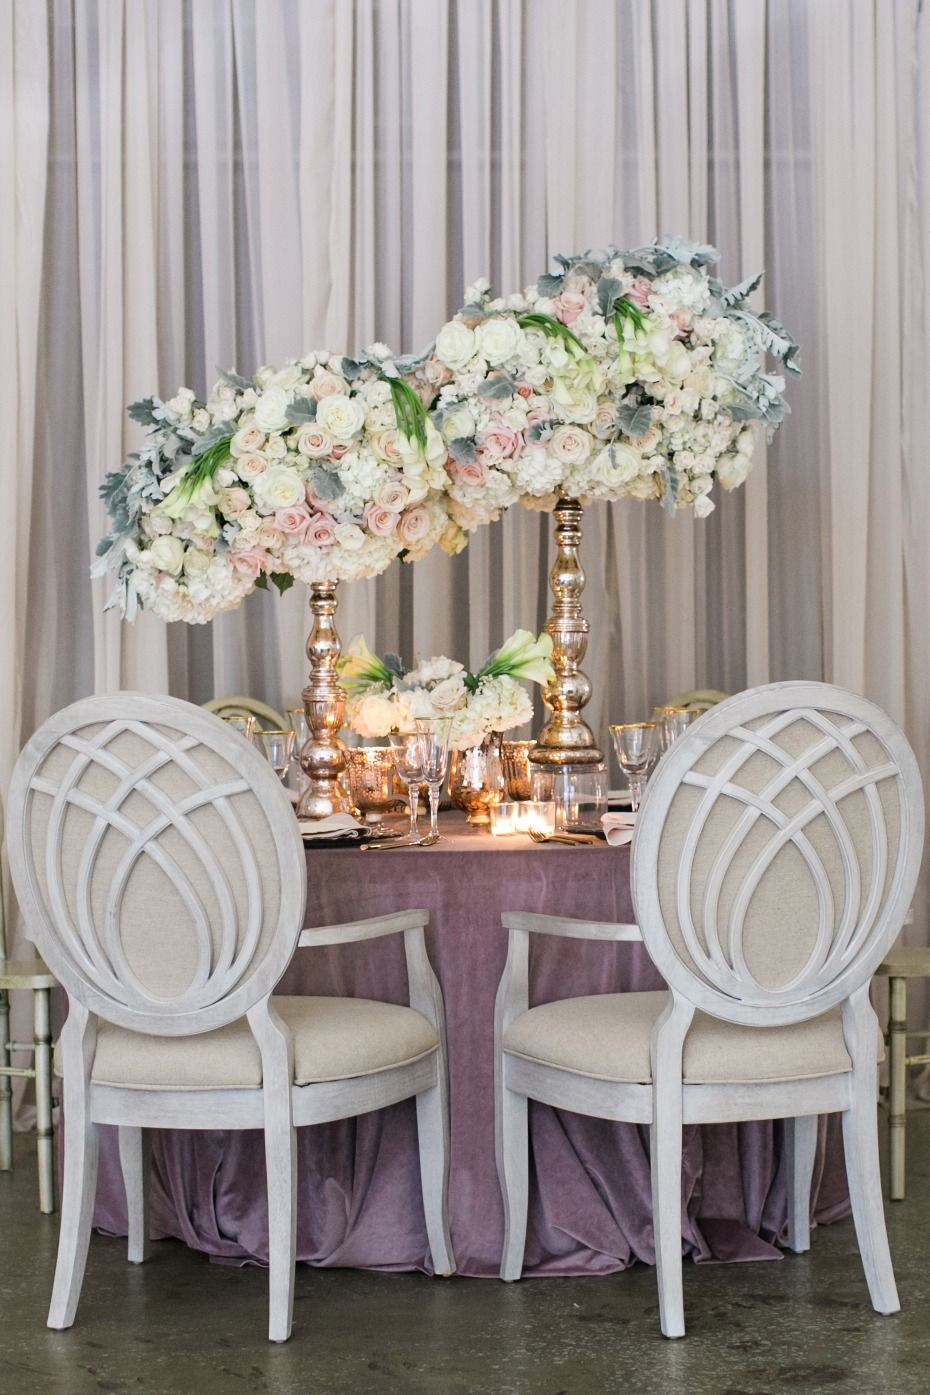 6 Ideas For Your Blush Wedding This Fall Fall Wedding Table